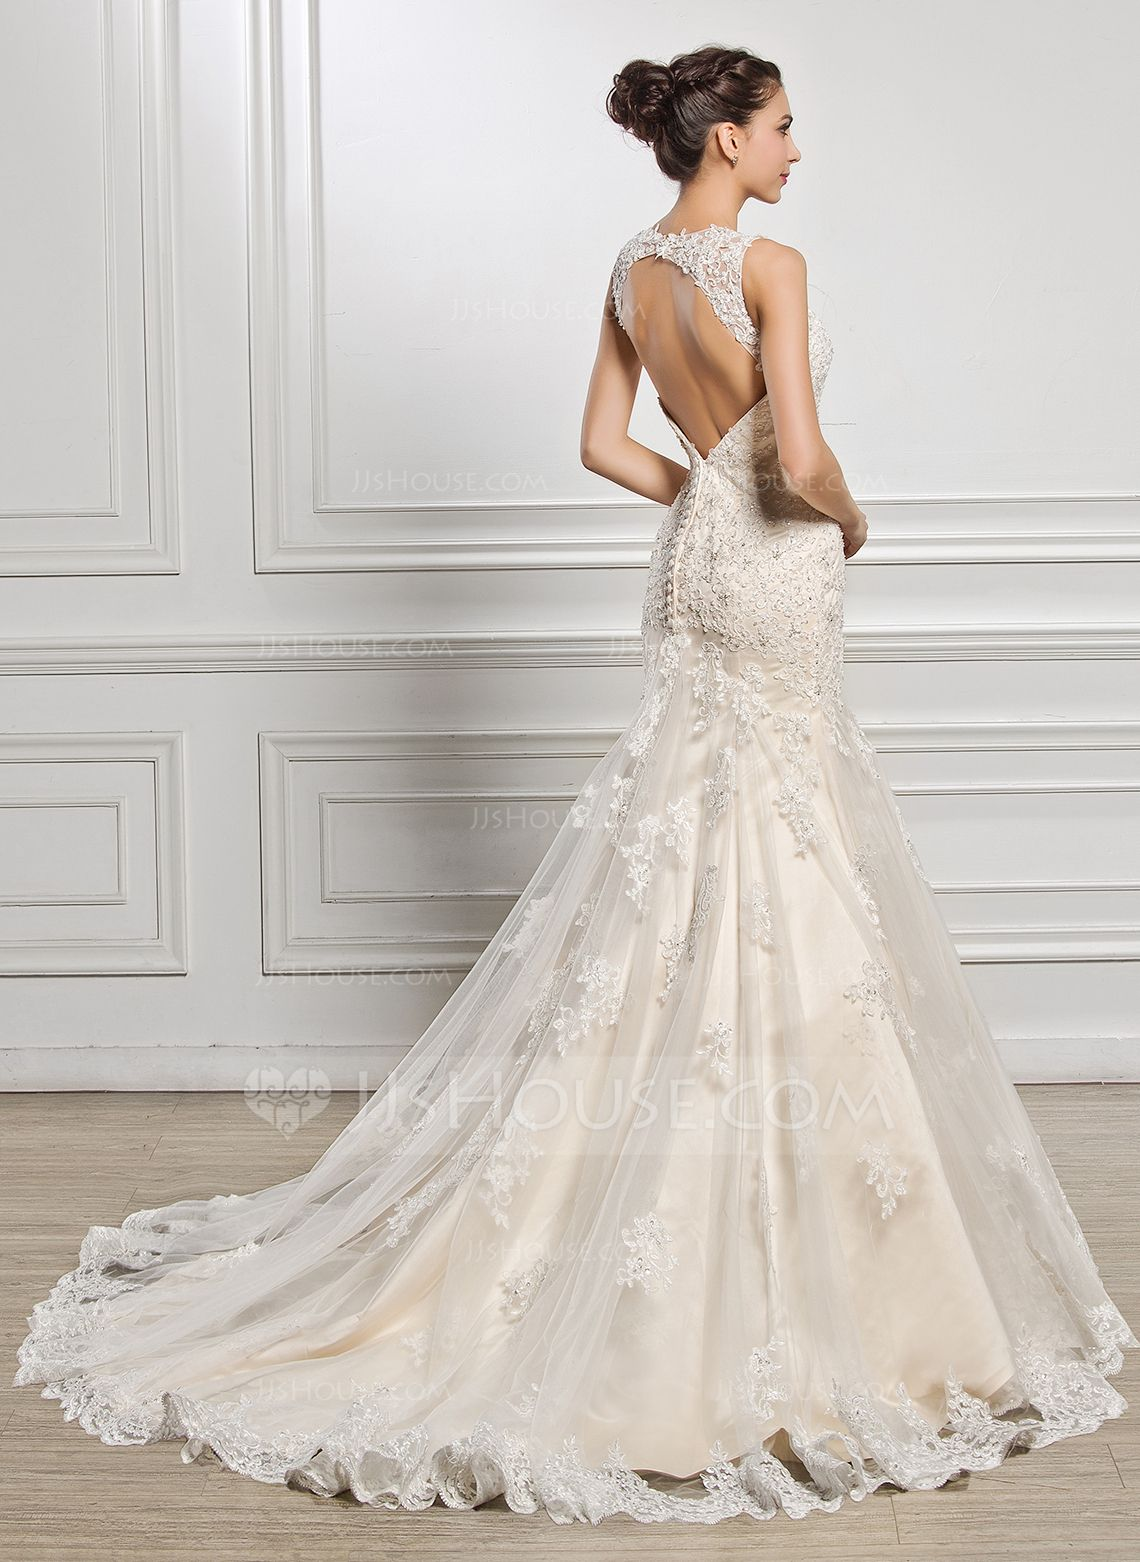 Us 442 00 Trumpet Mermaid Sweetheart Court Train Tulle Lace Wedding Dress With Beading Sequins Jj S House Wedding Dresses Lace Cheap Wedding Dress Wedding Dresses [ 1562 x 1140 Pixel ]